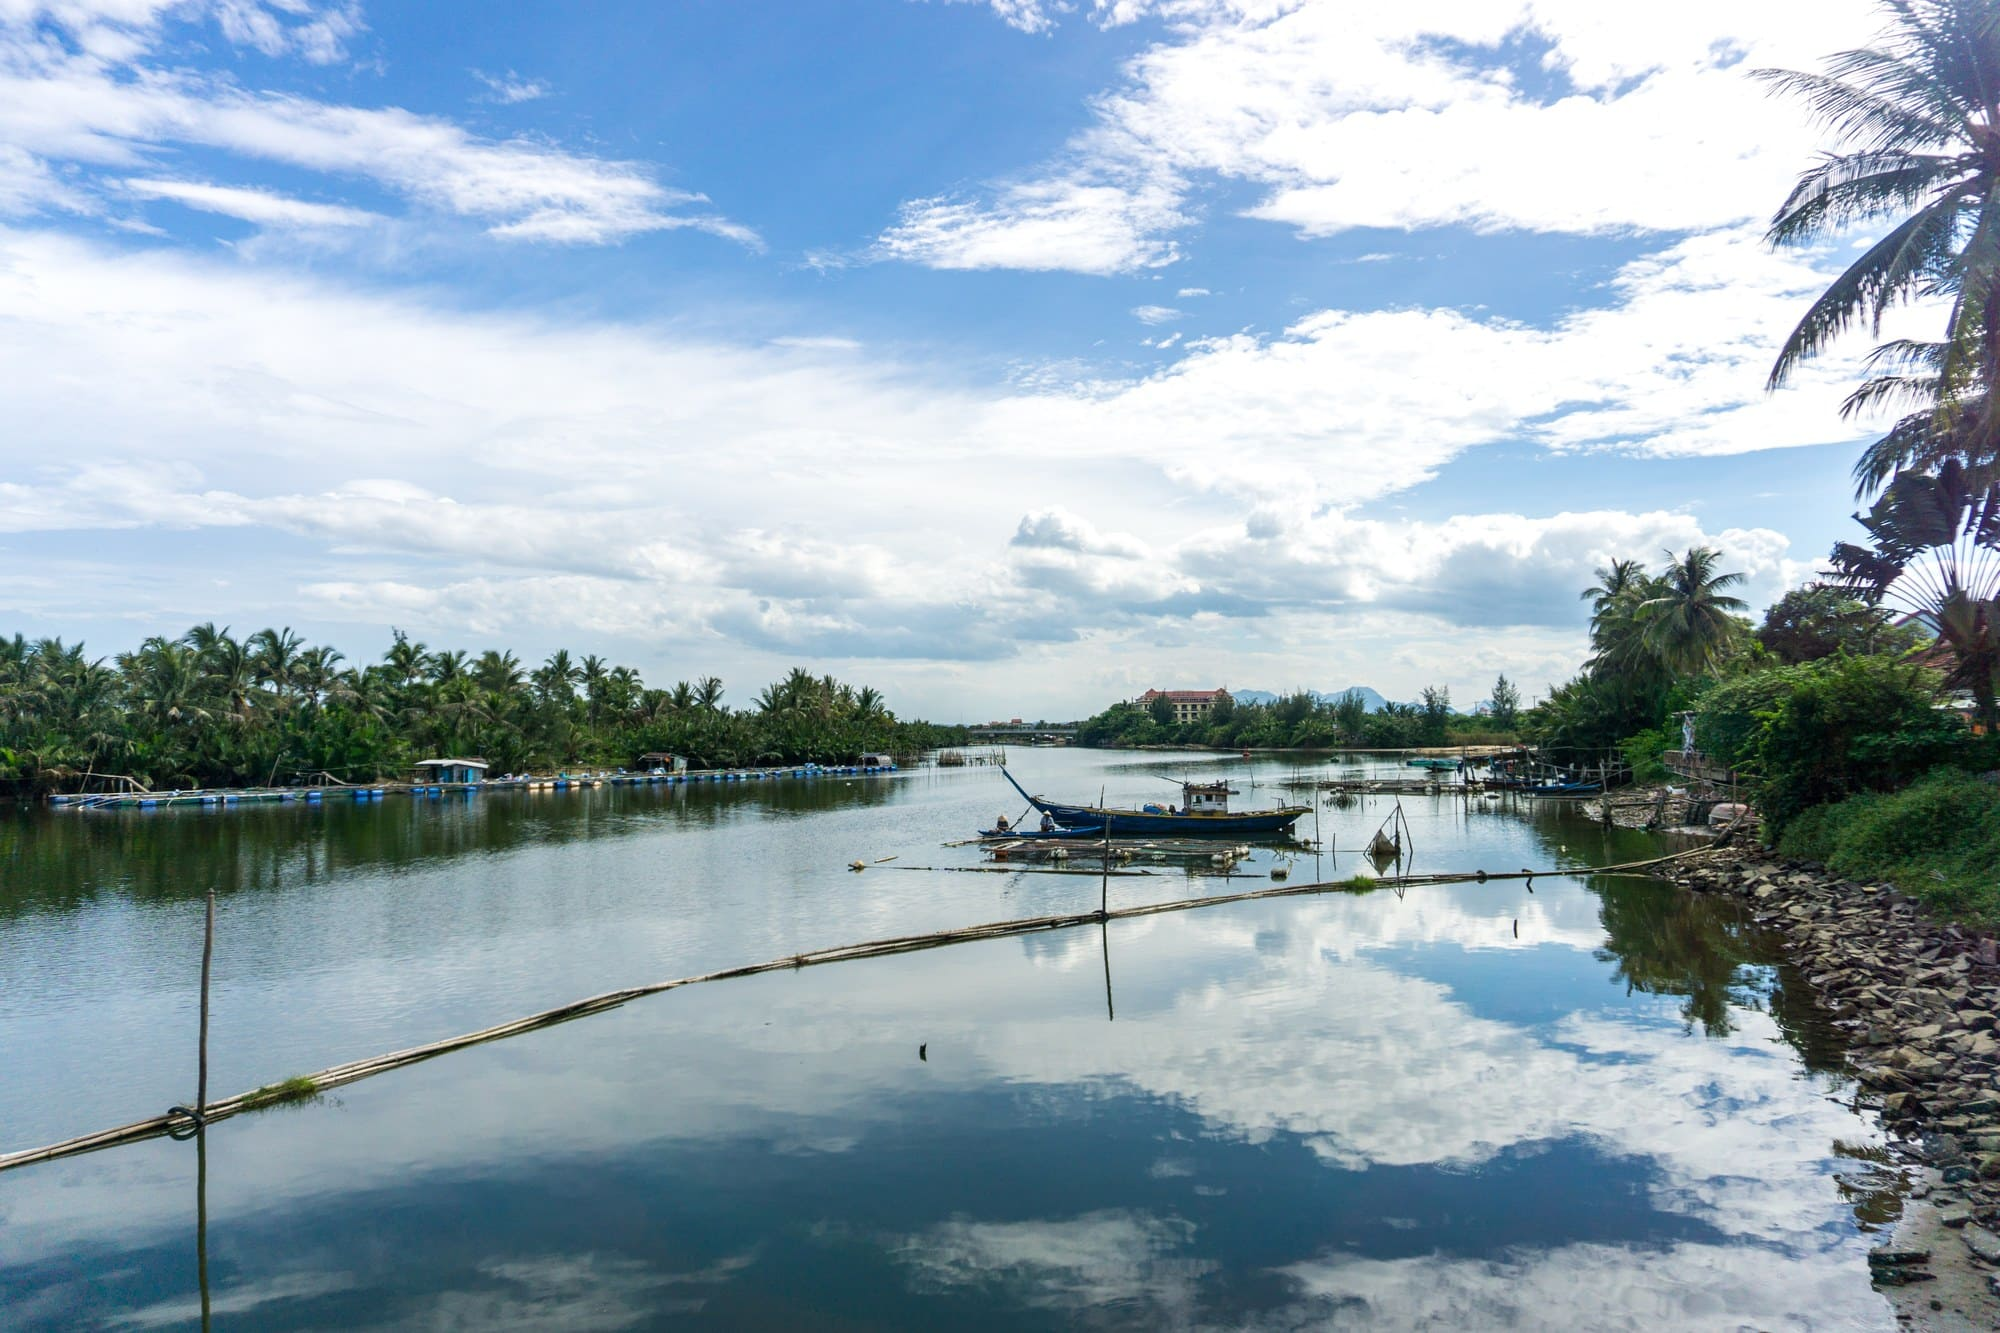 Hoi An backpacking